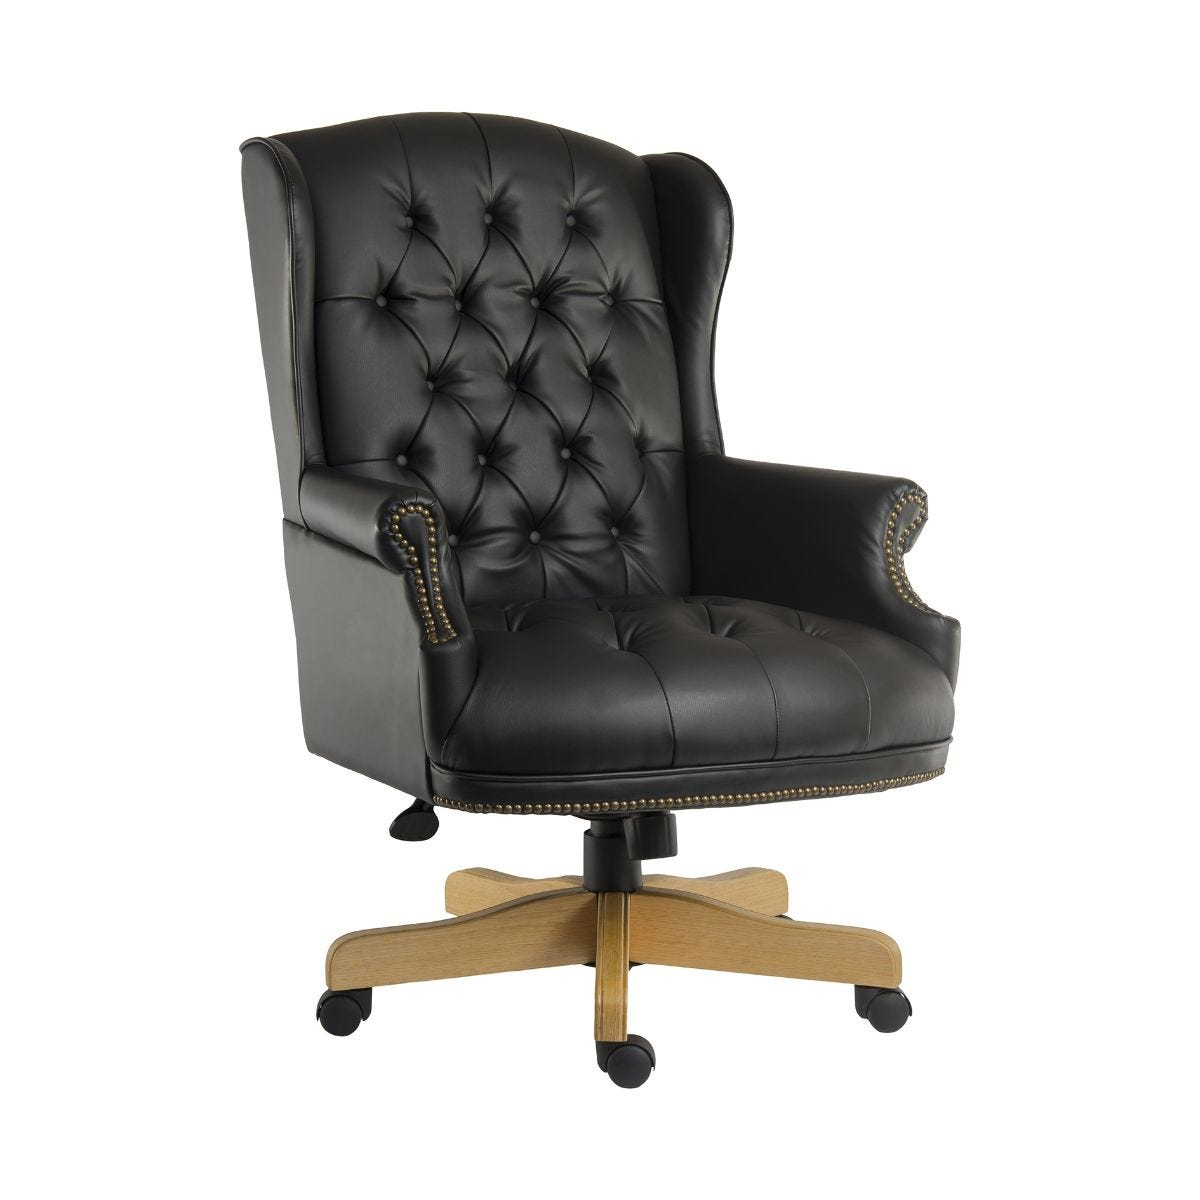 Teknik Office Chairman Swivel Executive Office Chair, Black